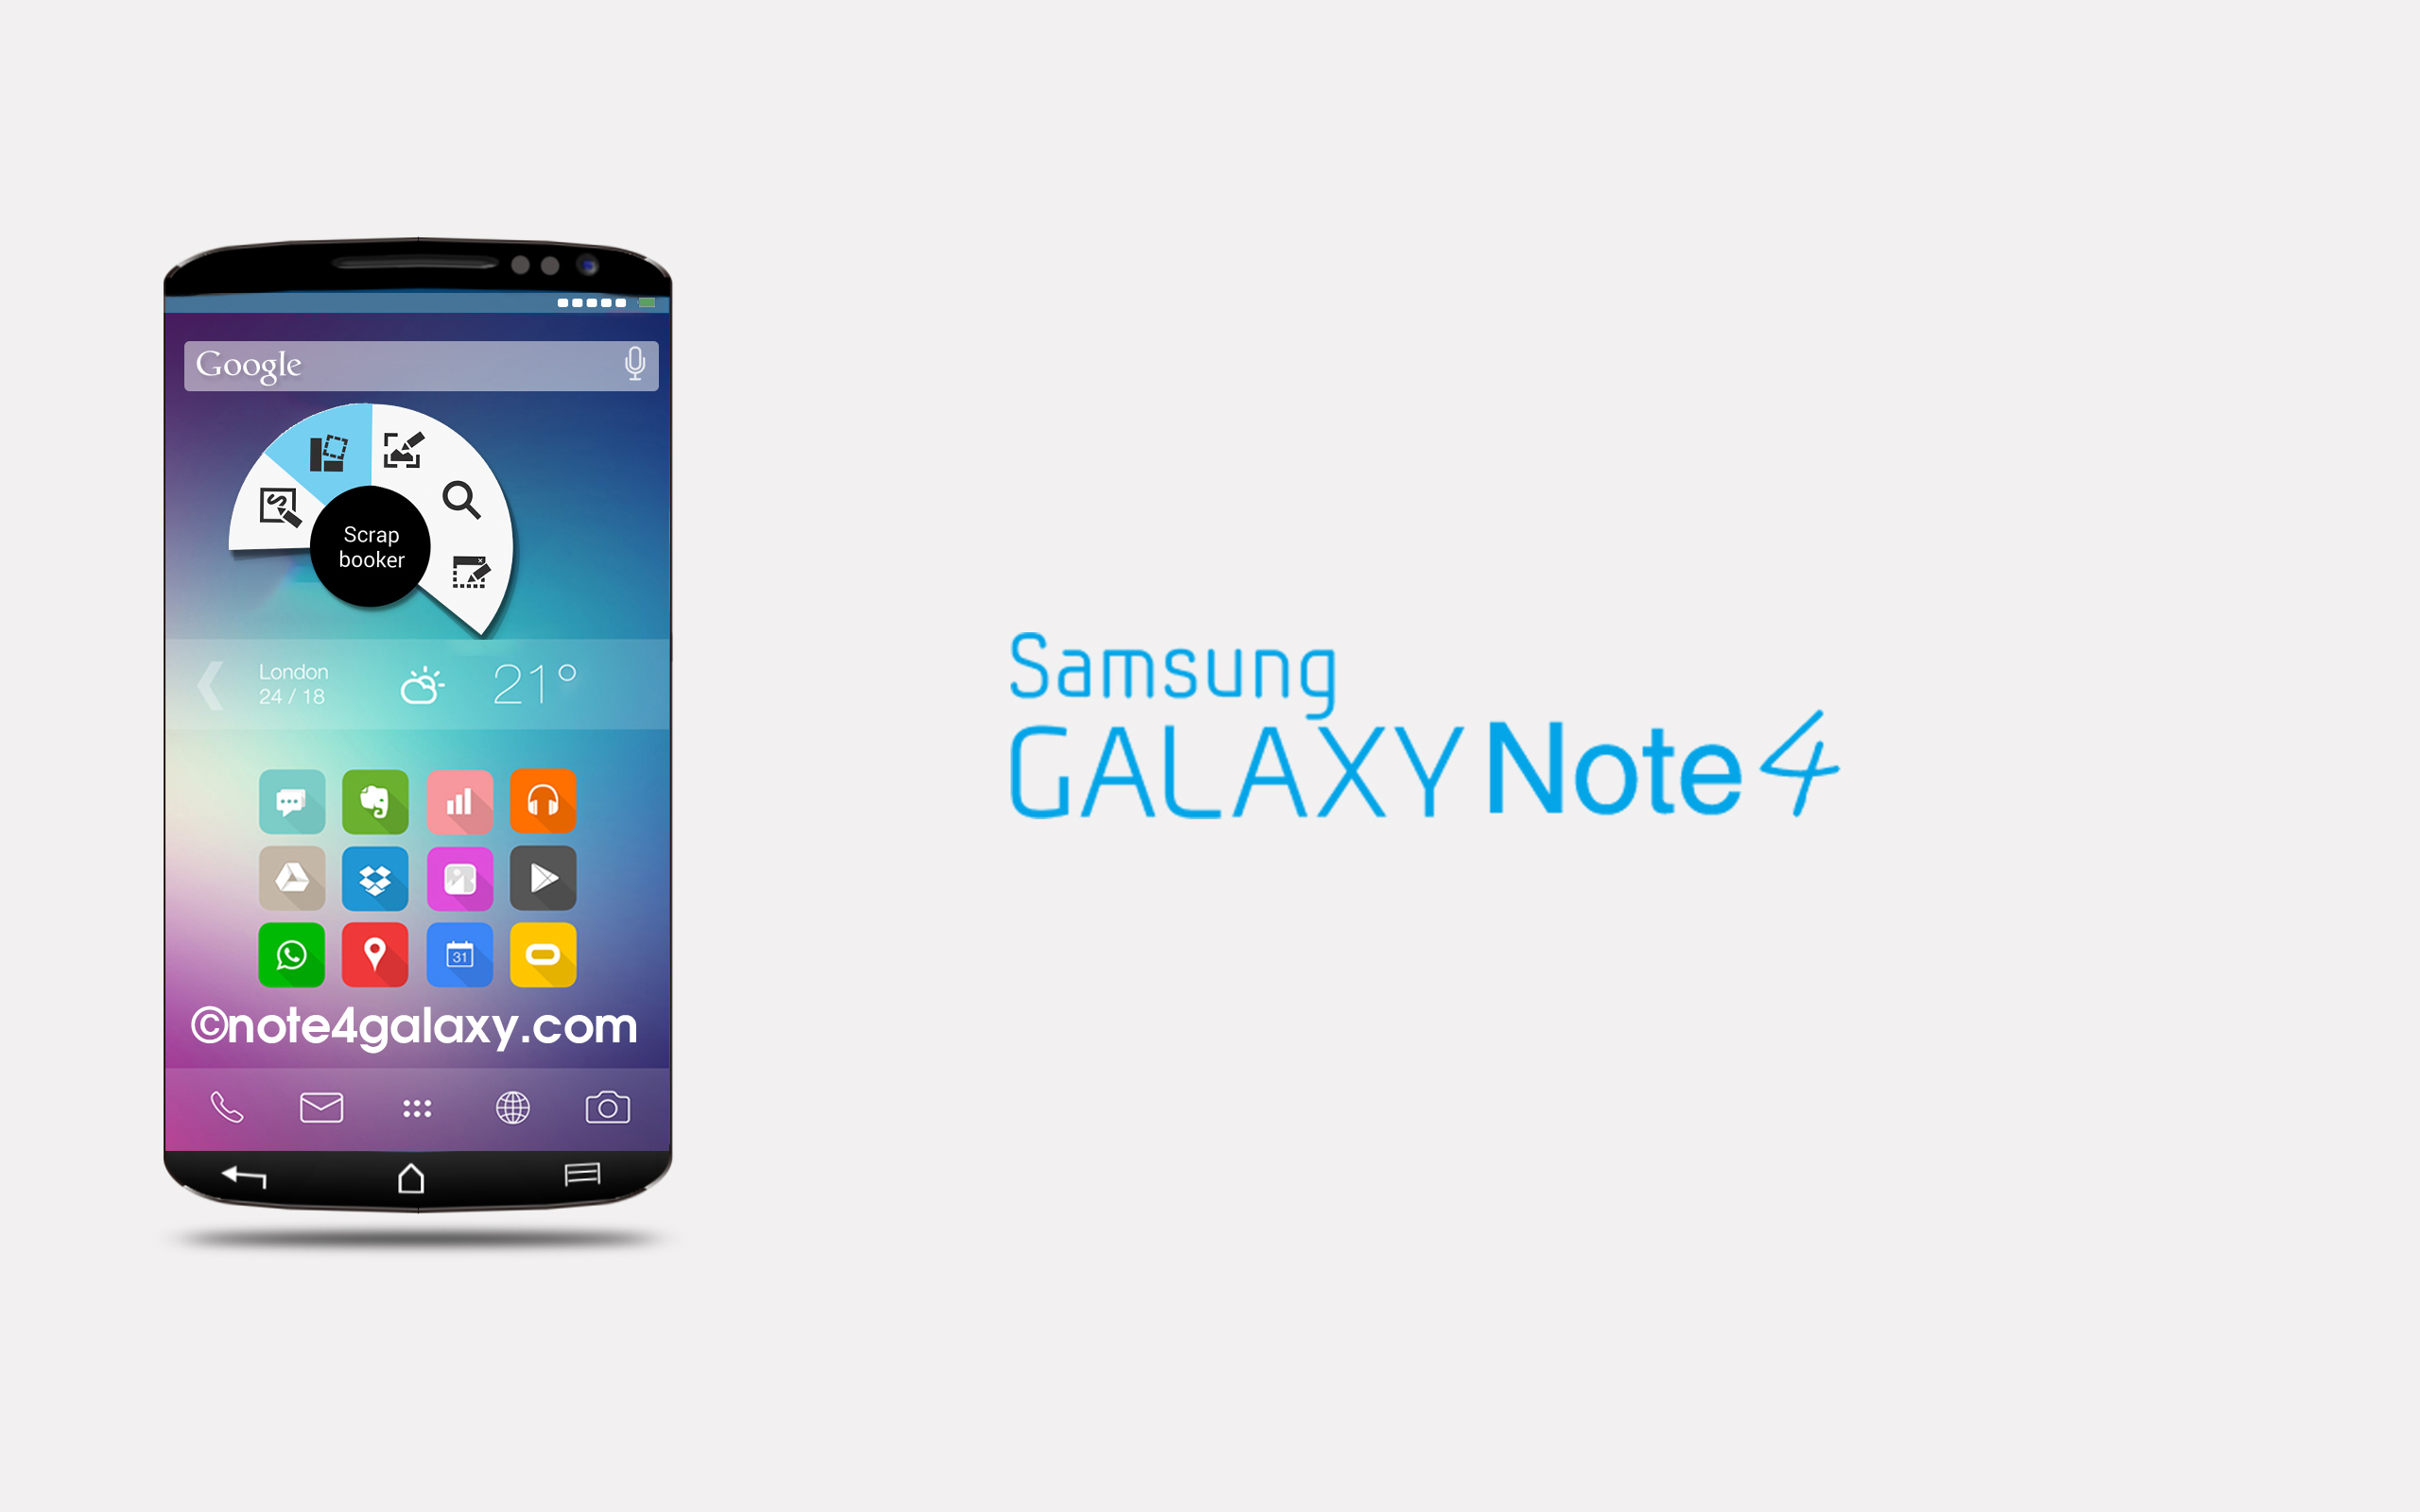 Samsung galaxy Note 4 with Android 5.1.1 for European version